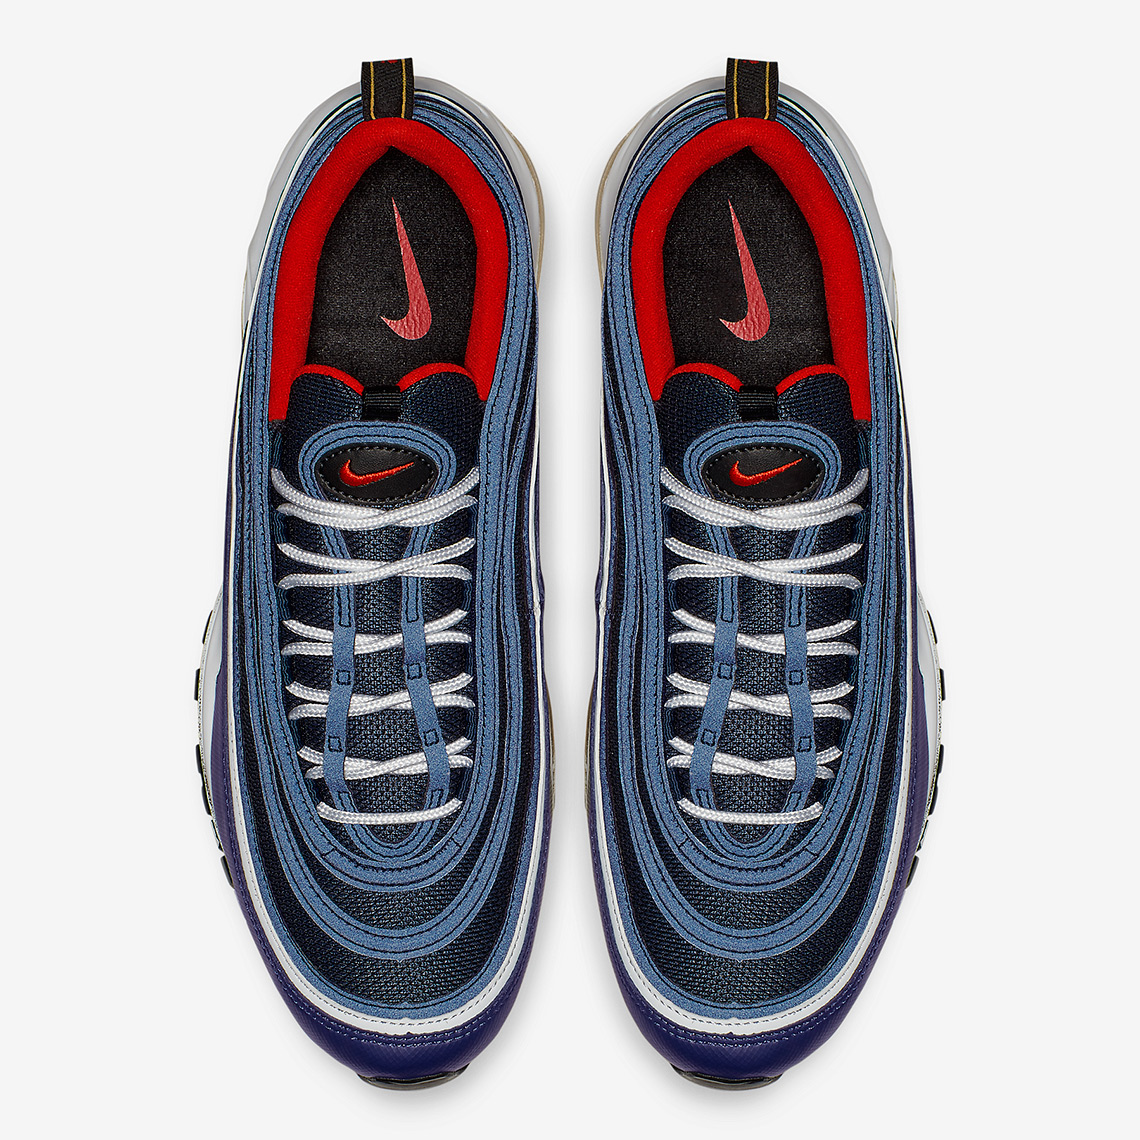 online retailer a957b df1a4 Nike Air Max 97. AVAILABLE AT Eastbay AVAILABLE AT Nike 160. Color  Midnight NavyHabanero Red-Black-White Style Code 921826-403